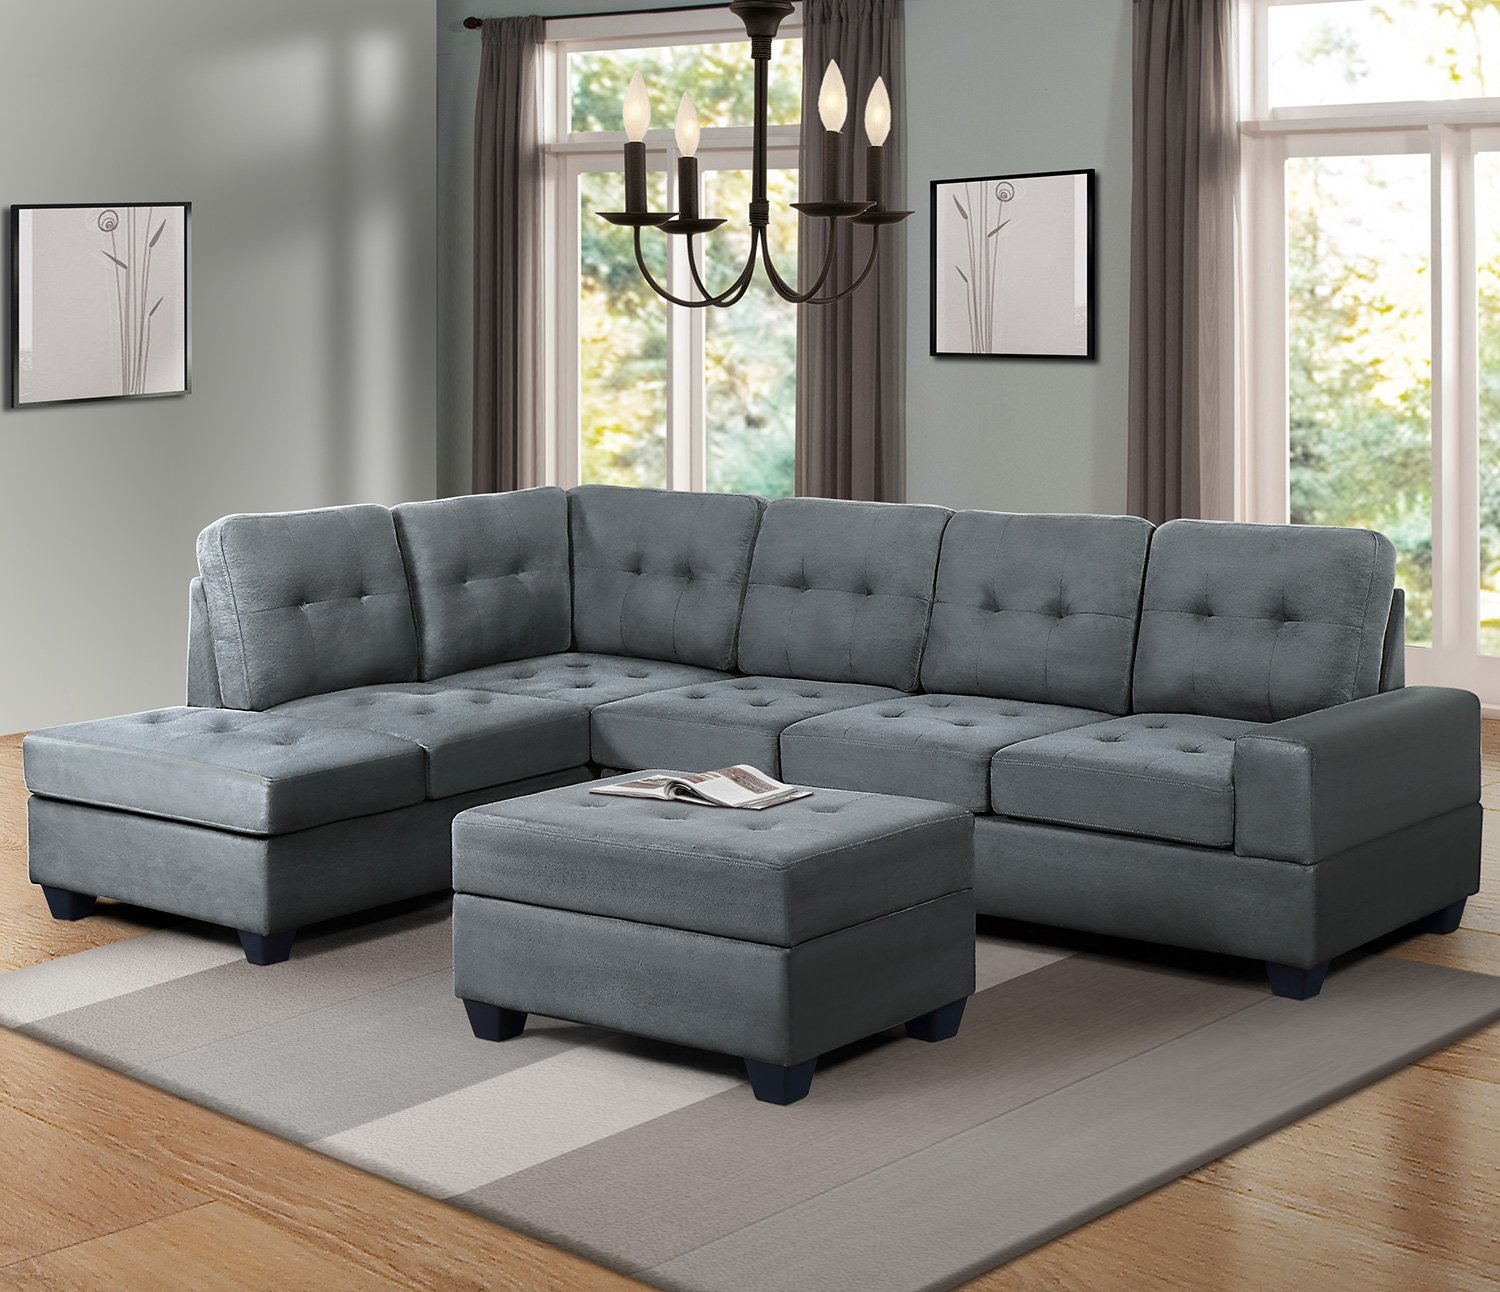 Harper & Bright Designs 3 Piece Sectional Sofa Couch Microfiber with  Reversible Chaise Lounge Storage Ottoman and Cup Holders for Living Room  (Grey ...